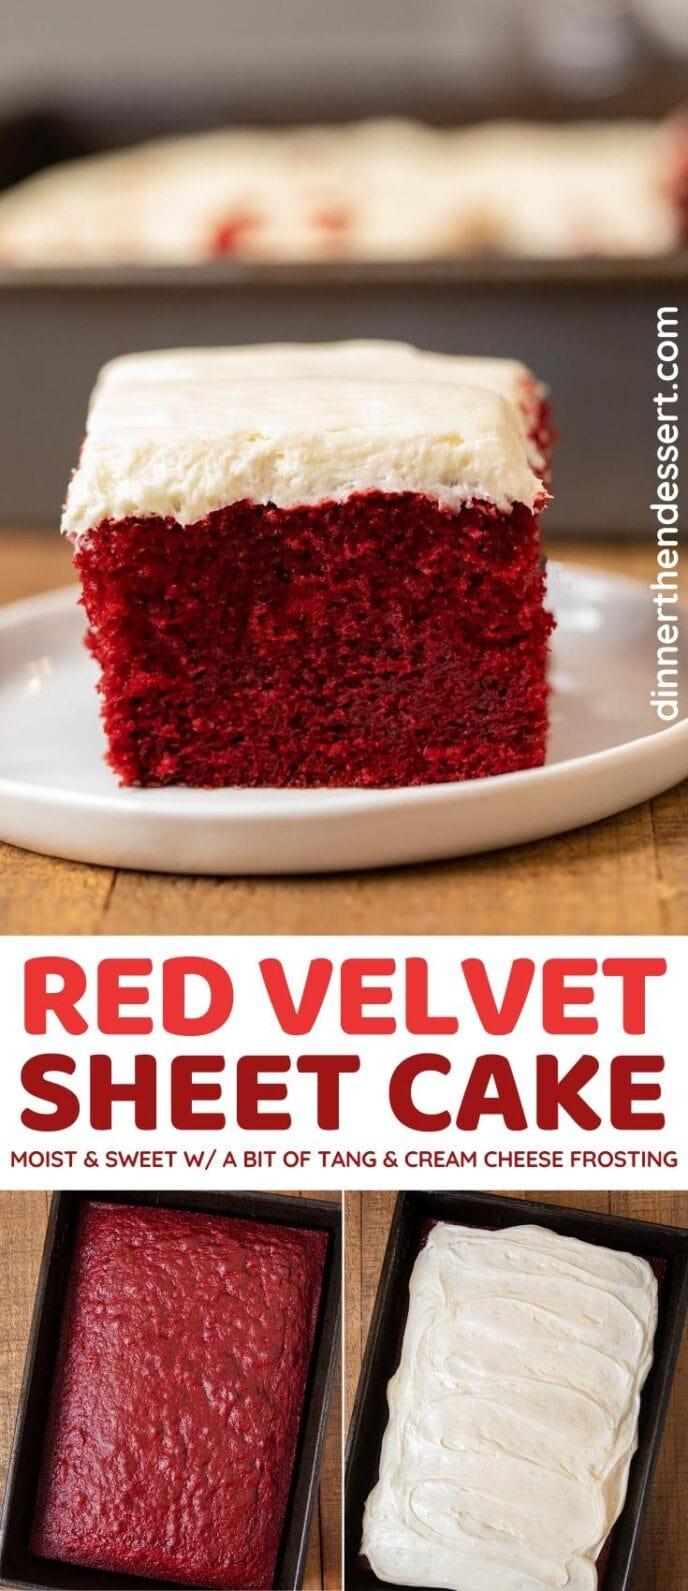 Red Velvet Sheet Cake collage